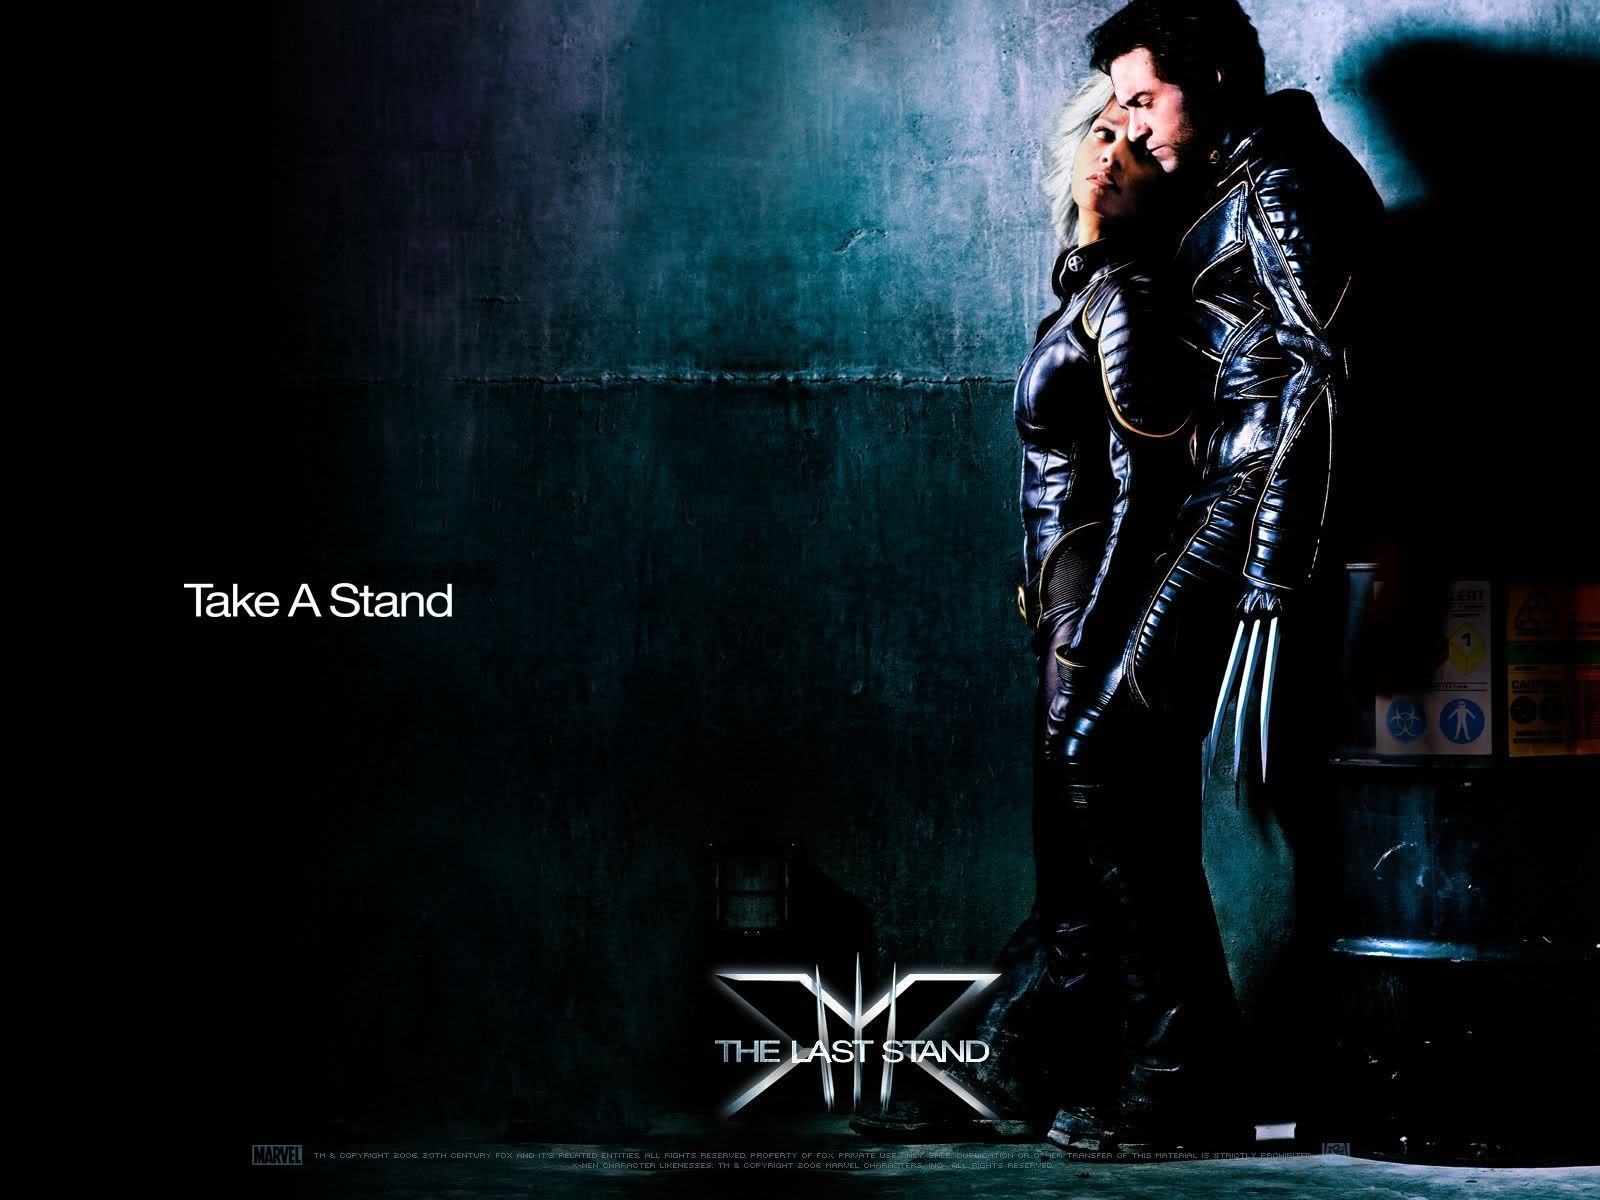 wolverine storm images wolverine storm hd wallpaper and